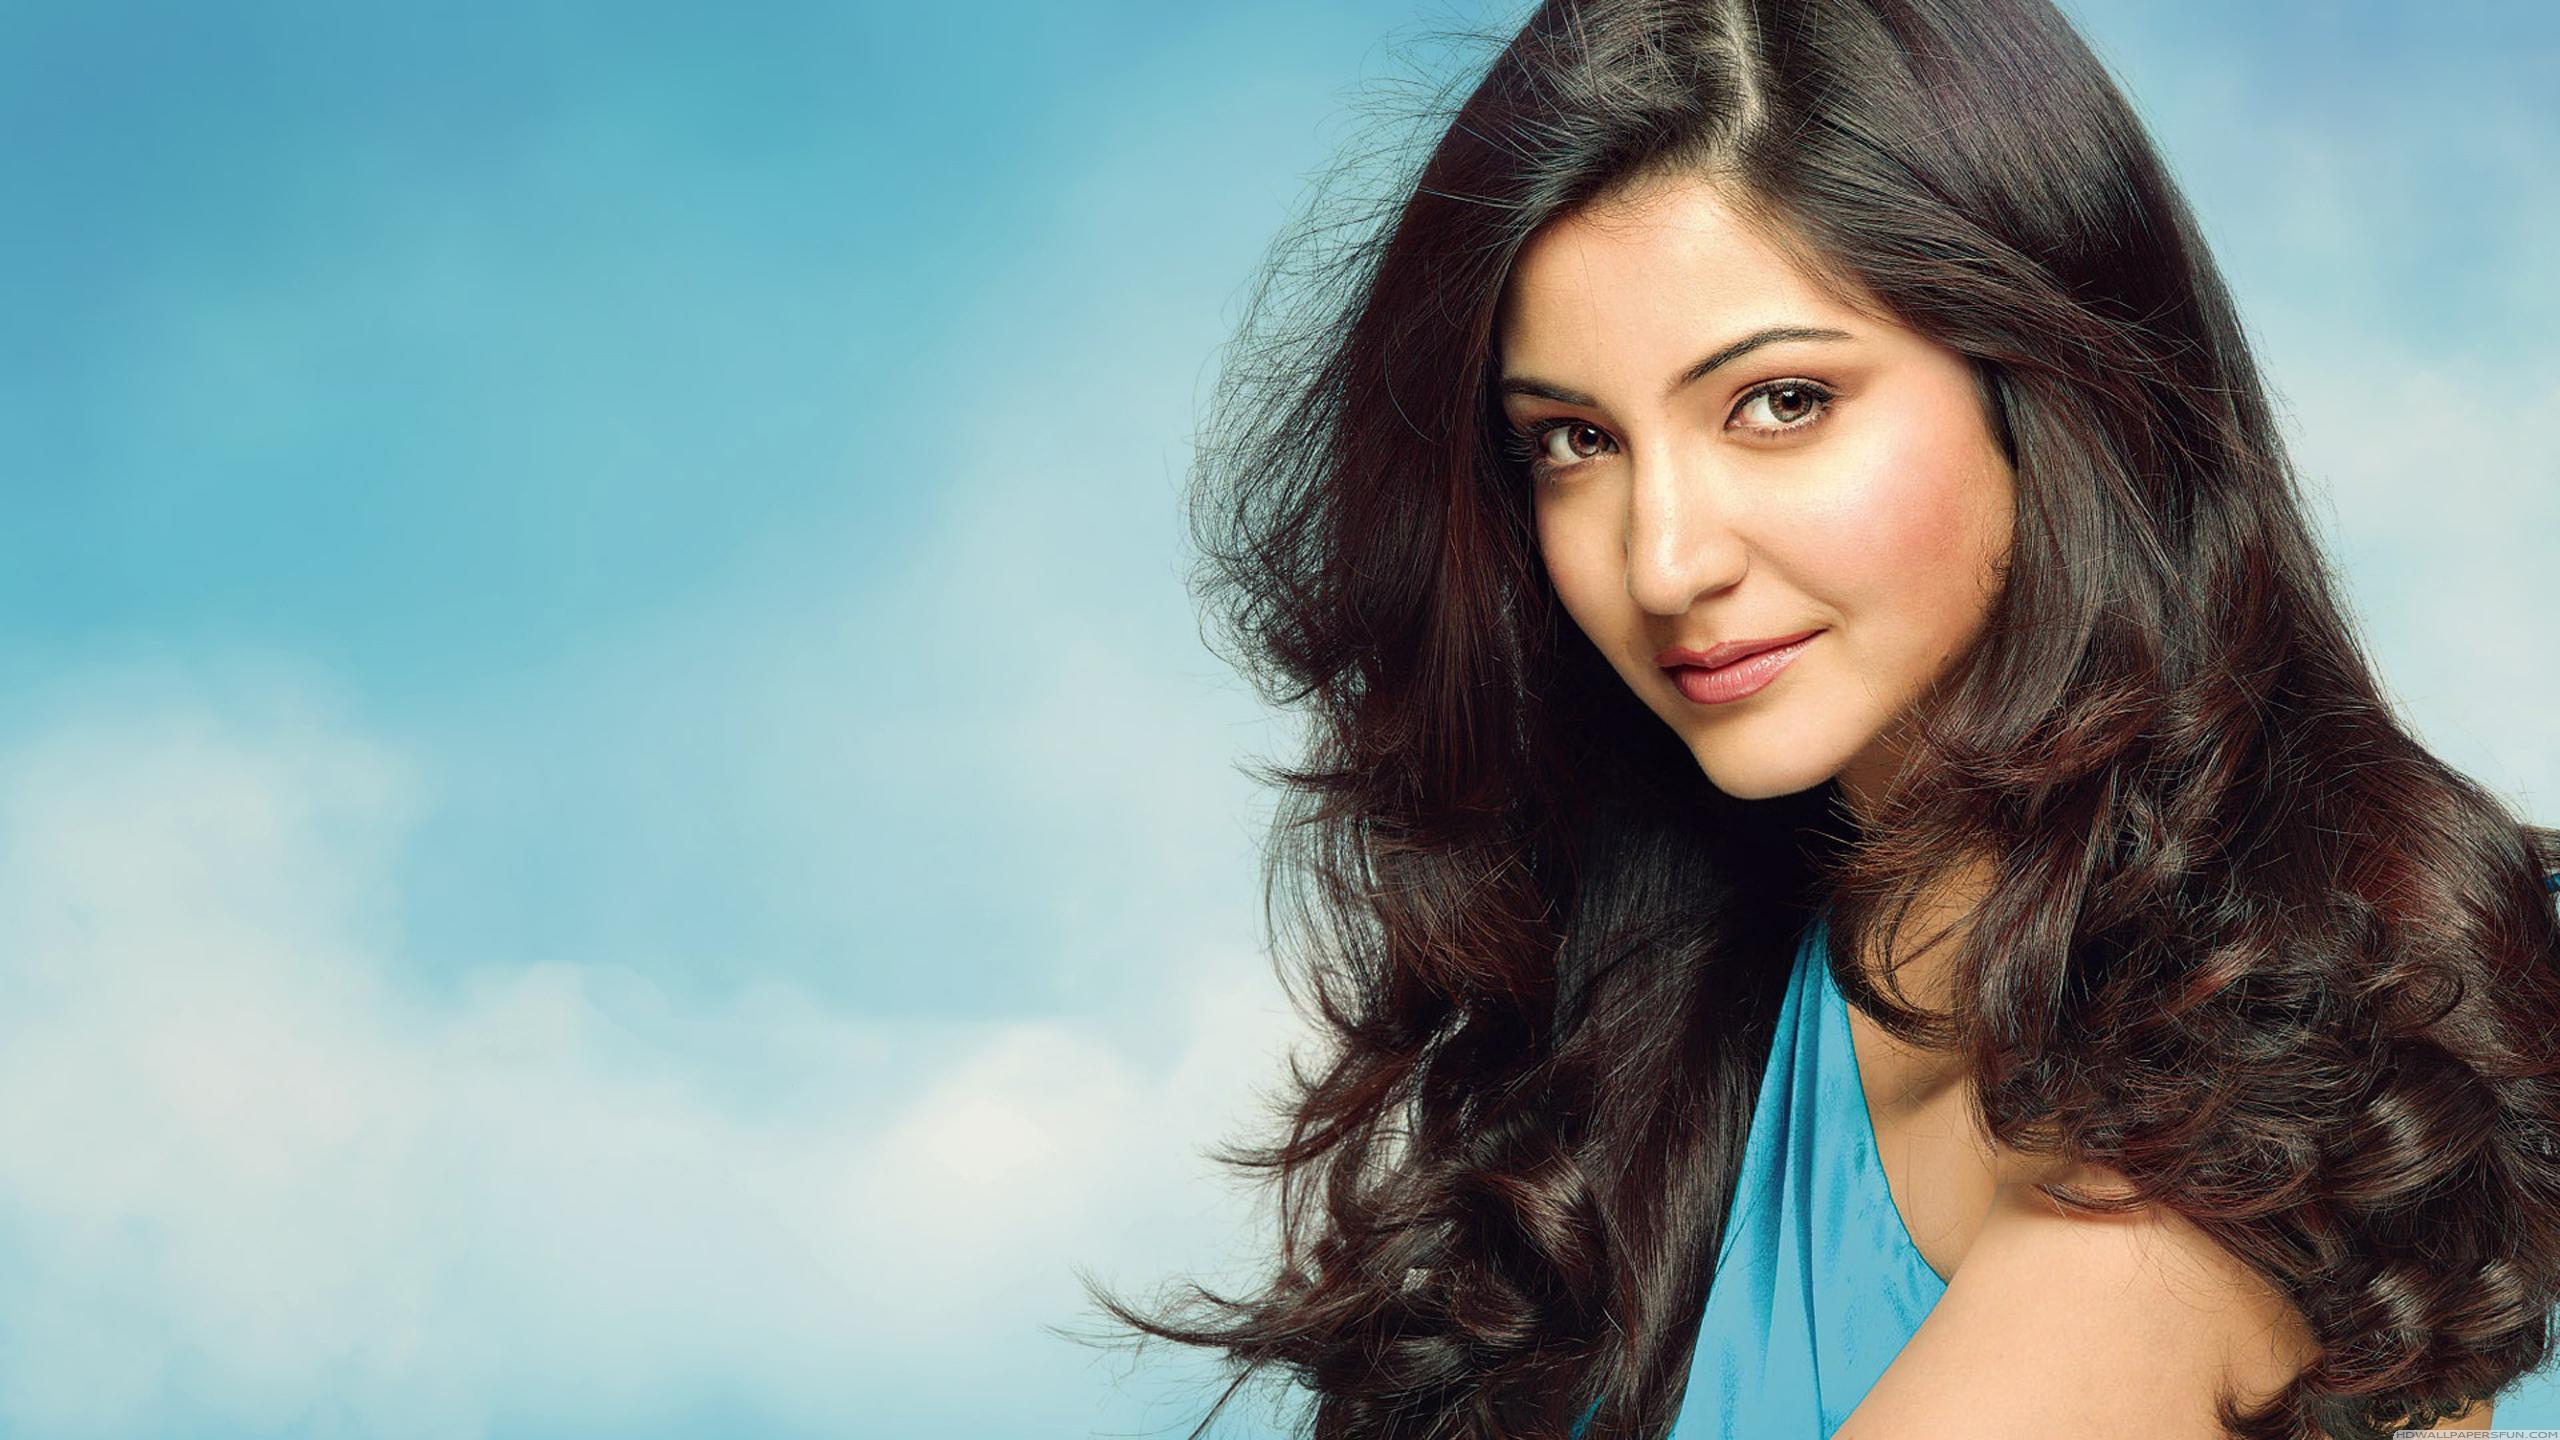 Anushka Sharma Wallpapers High Resolution And Quality Download